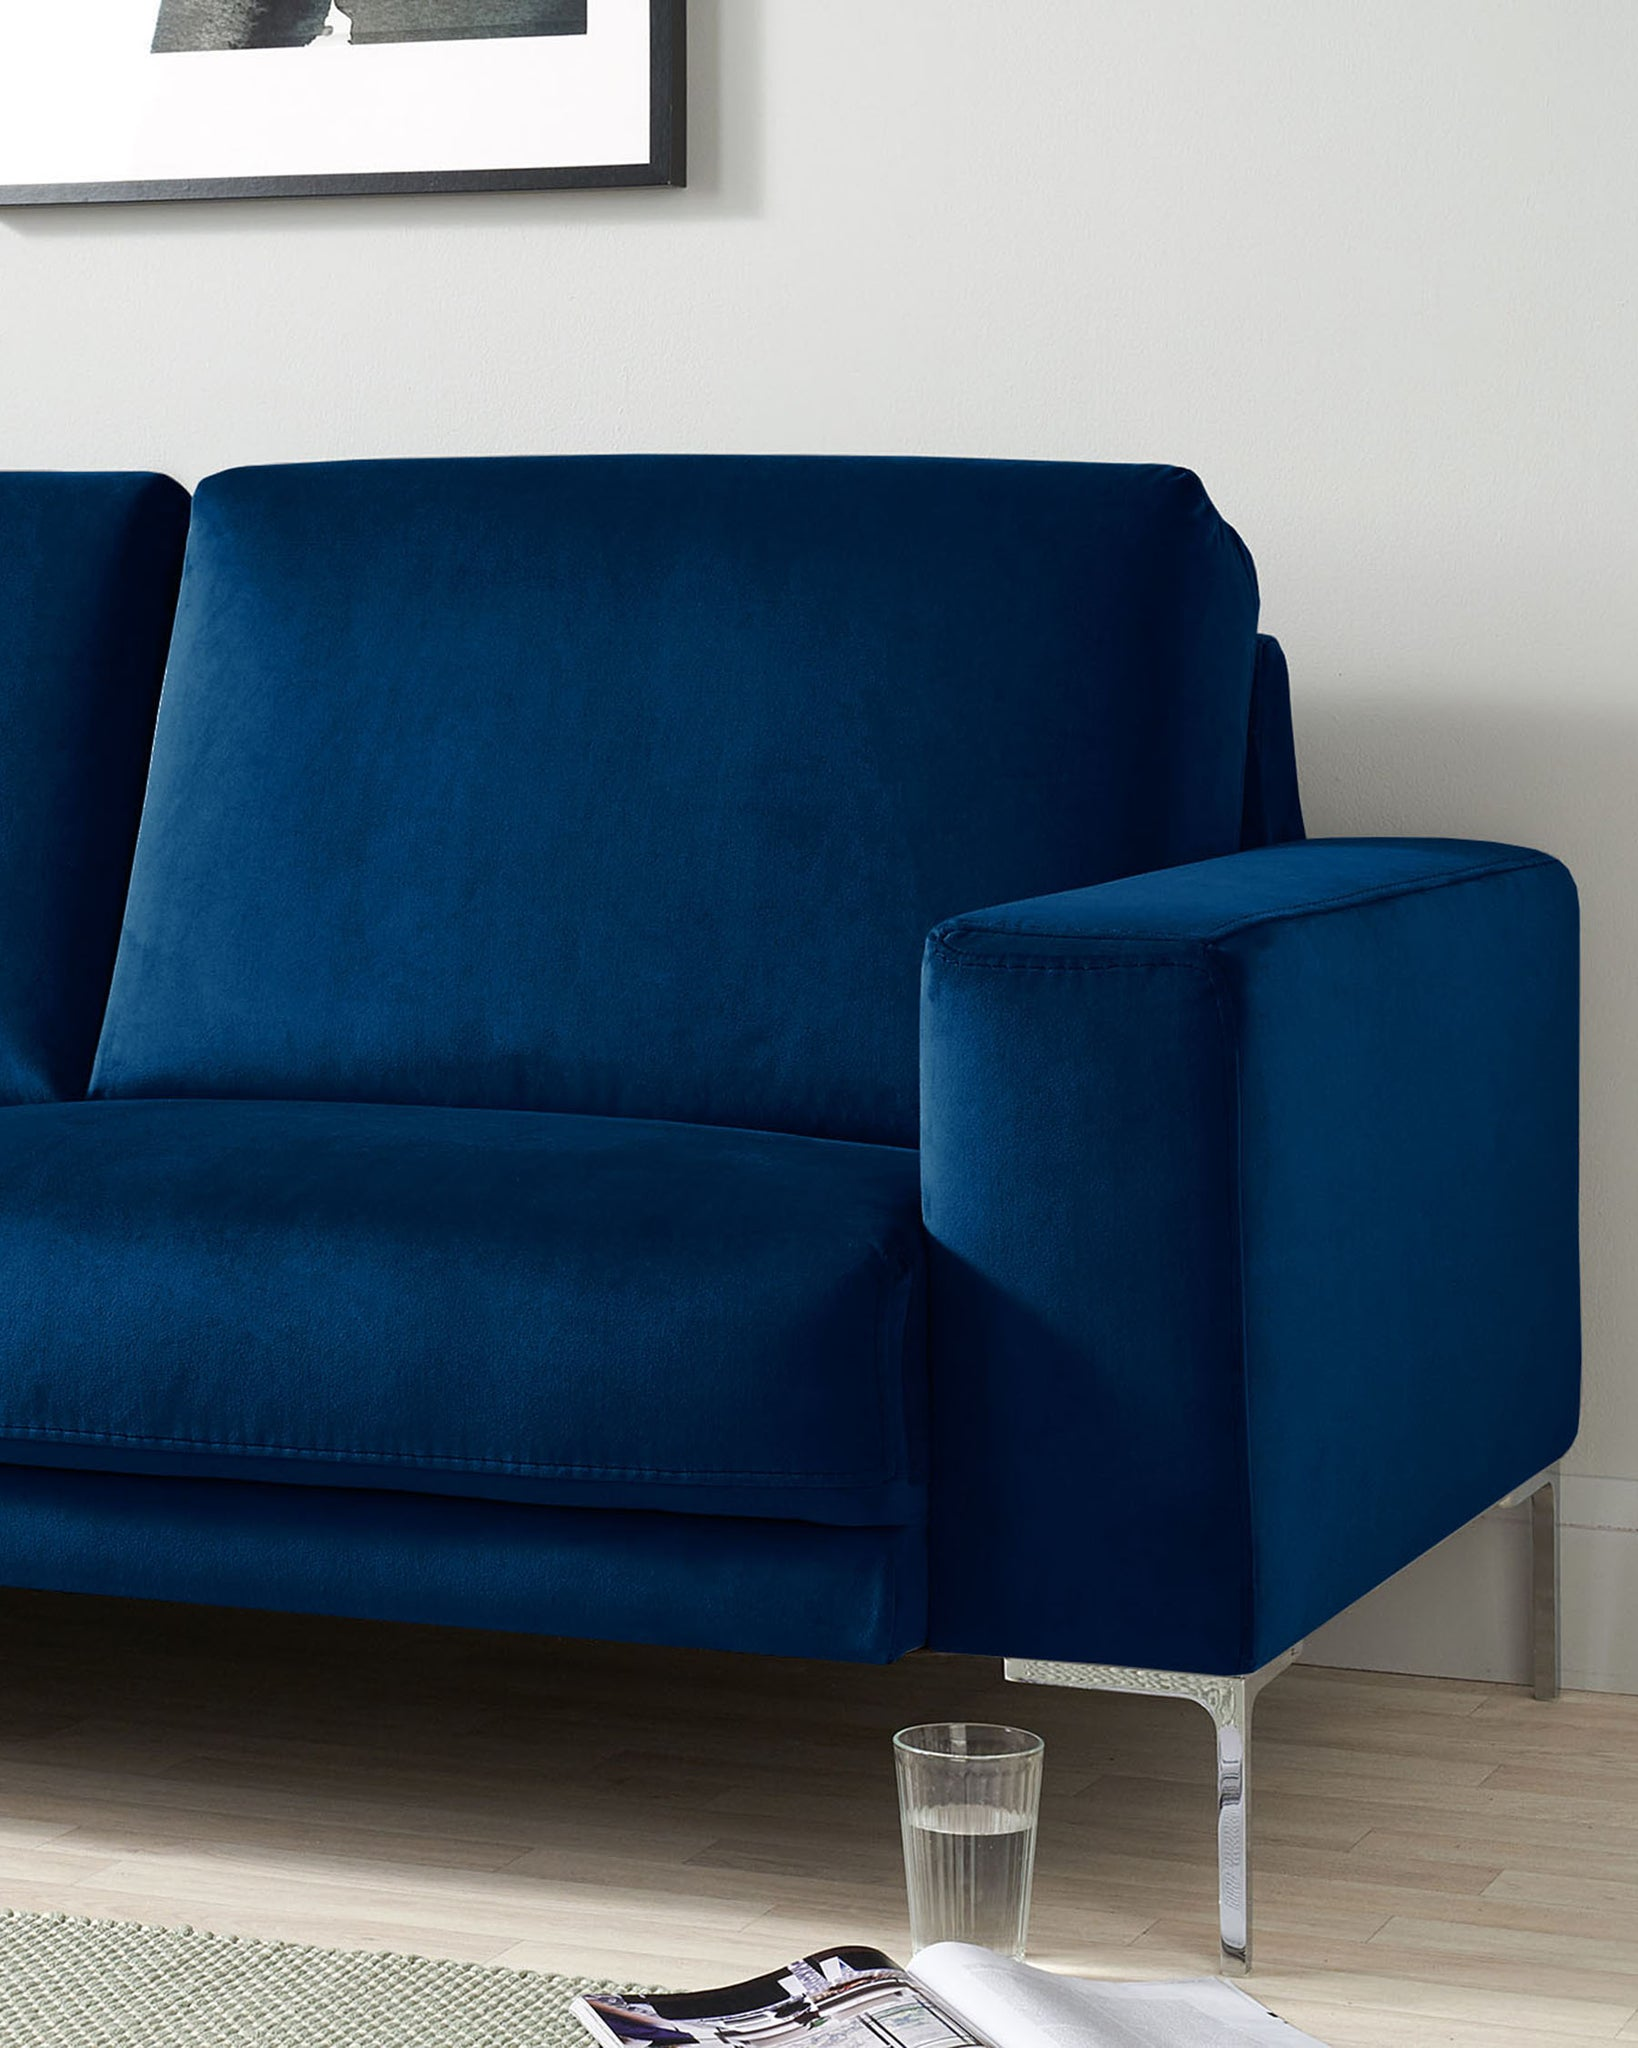 Studio Dark Blue Velvet With Chrome Leg 3 Seater Sofa